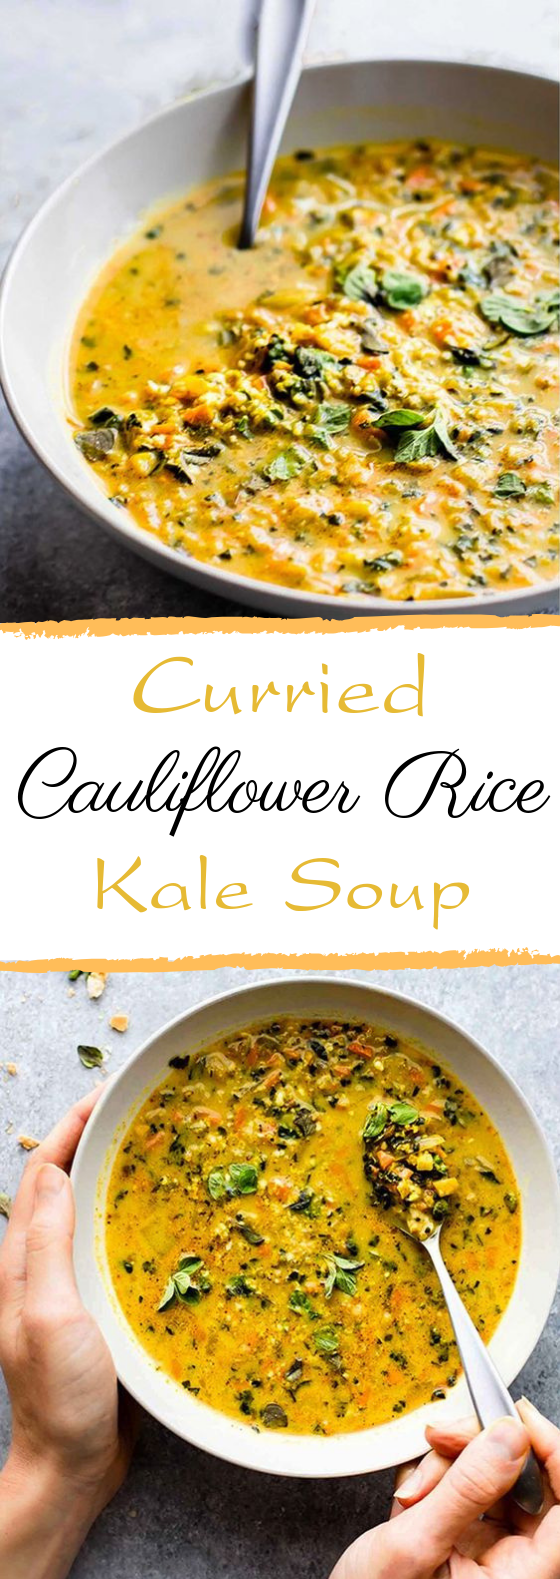 Curried Cauliflower Rice Kale Soup #soup #vegetarian